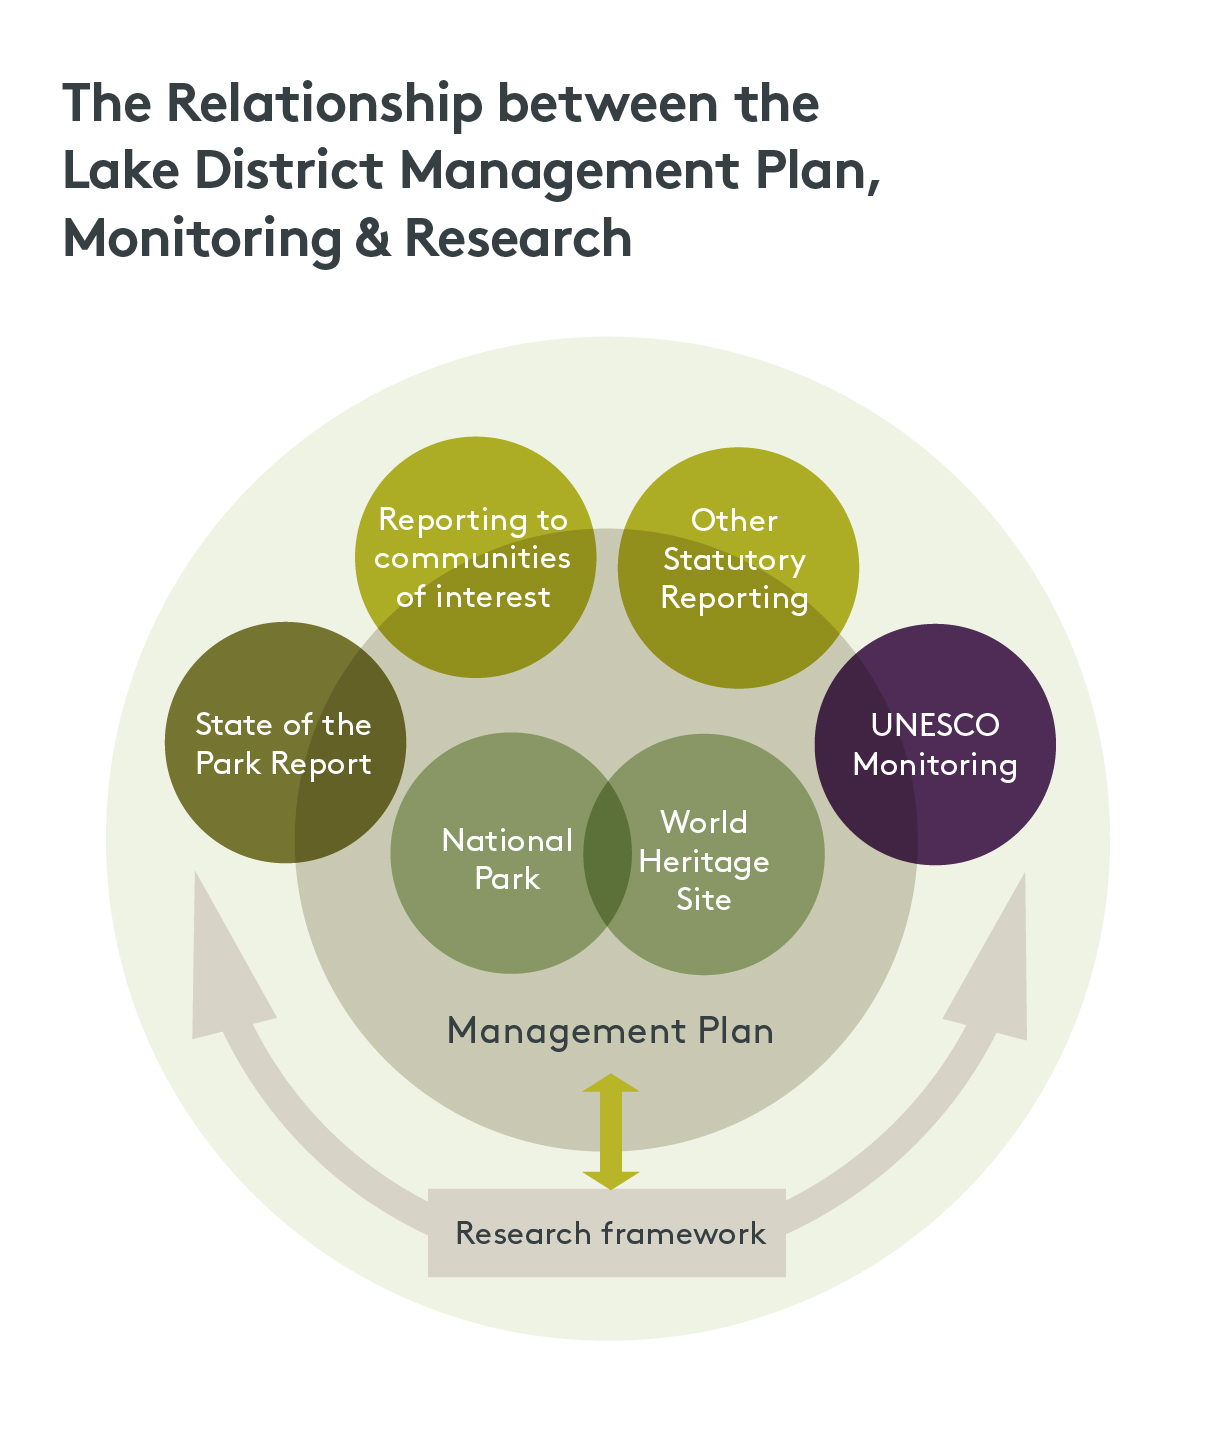 Graphic showing the relationship between the Lake District Management Plan, Monitoring & Research